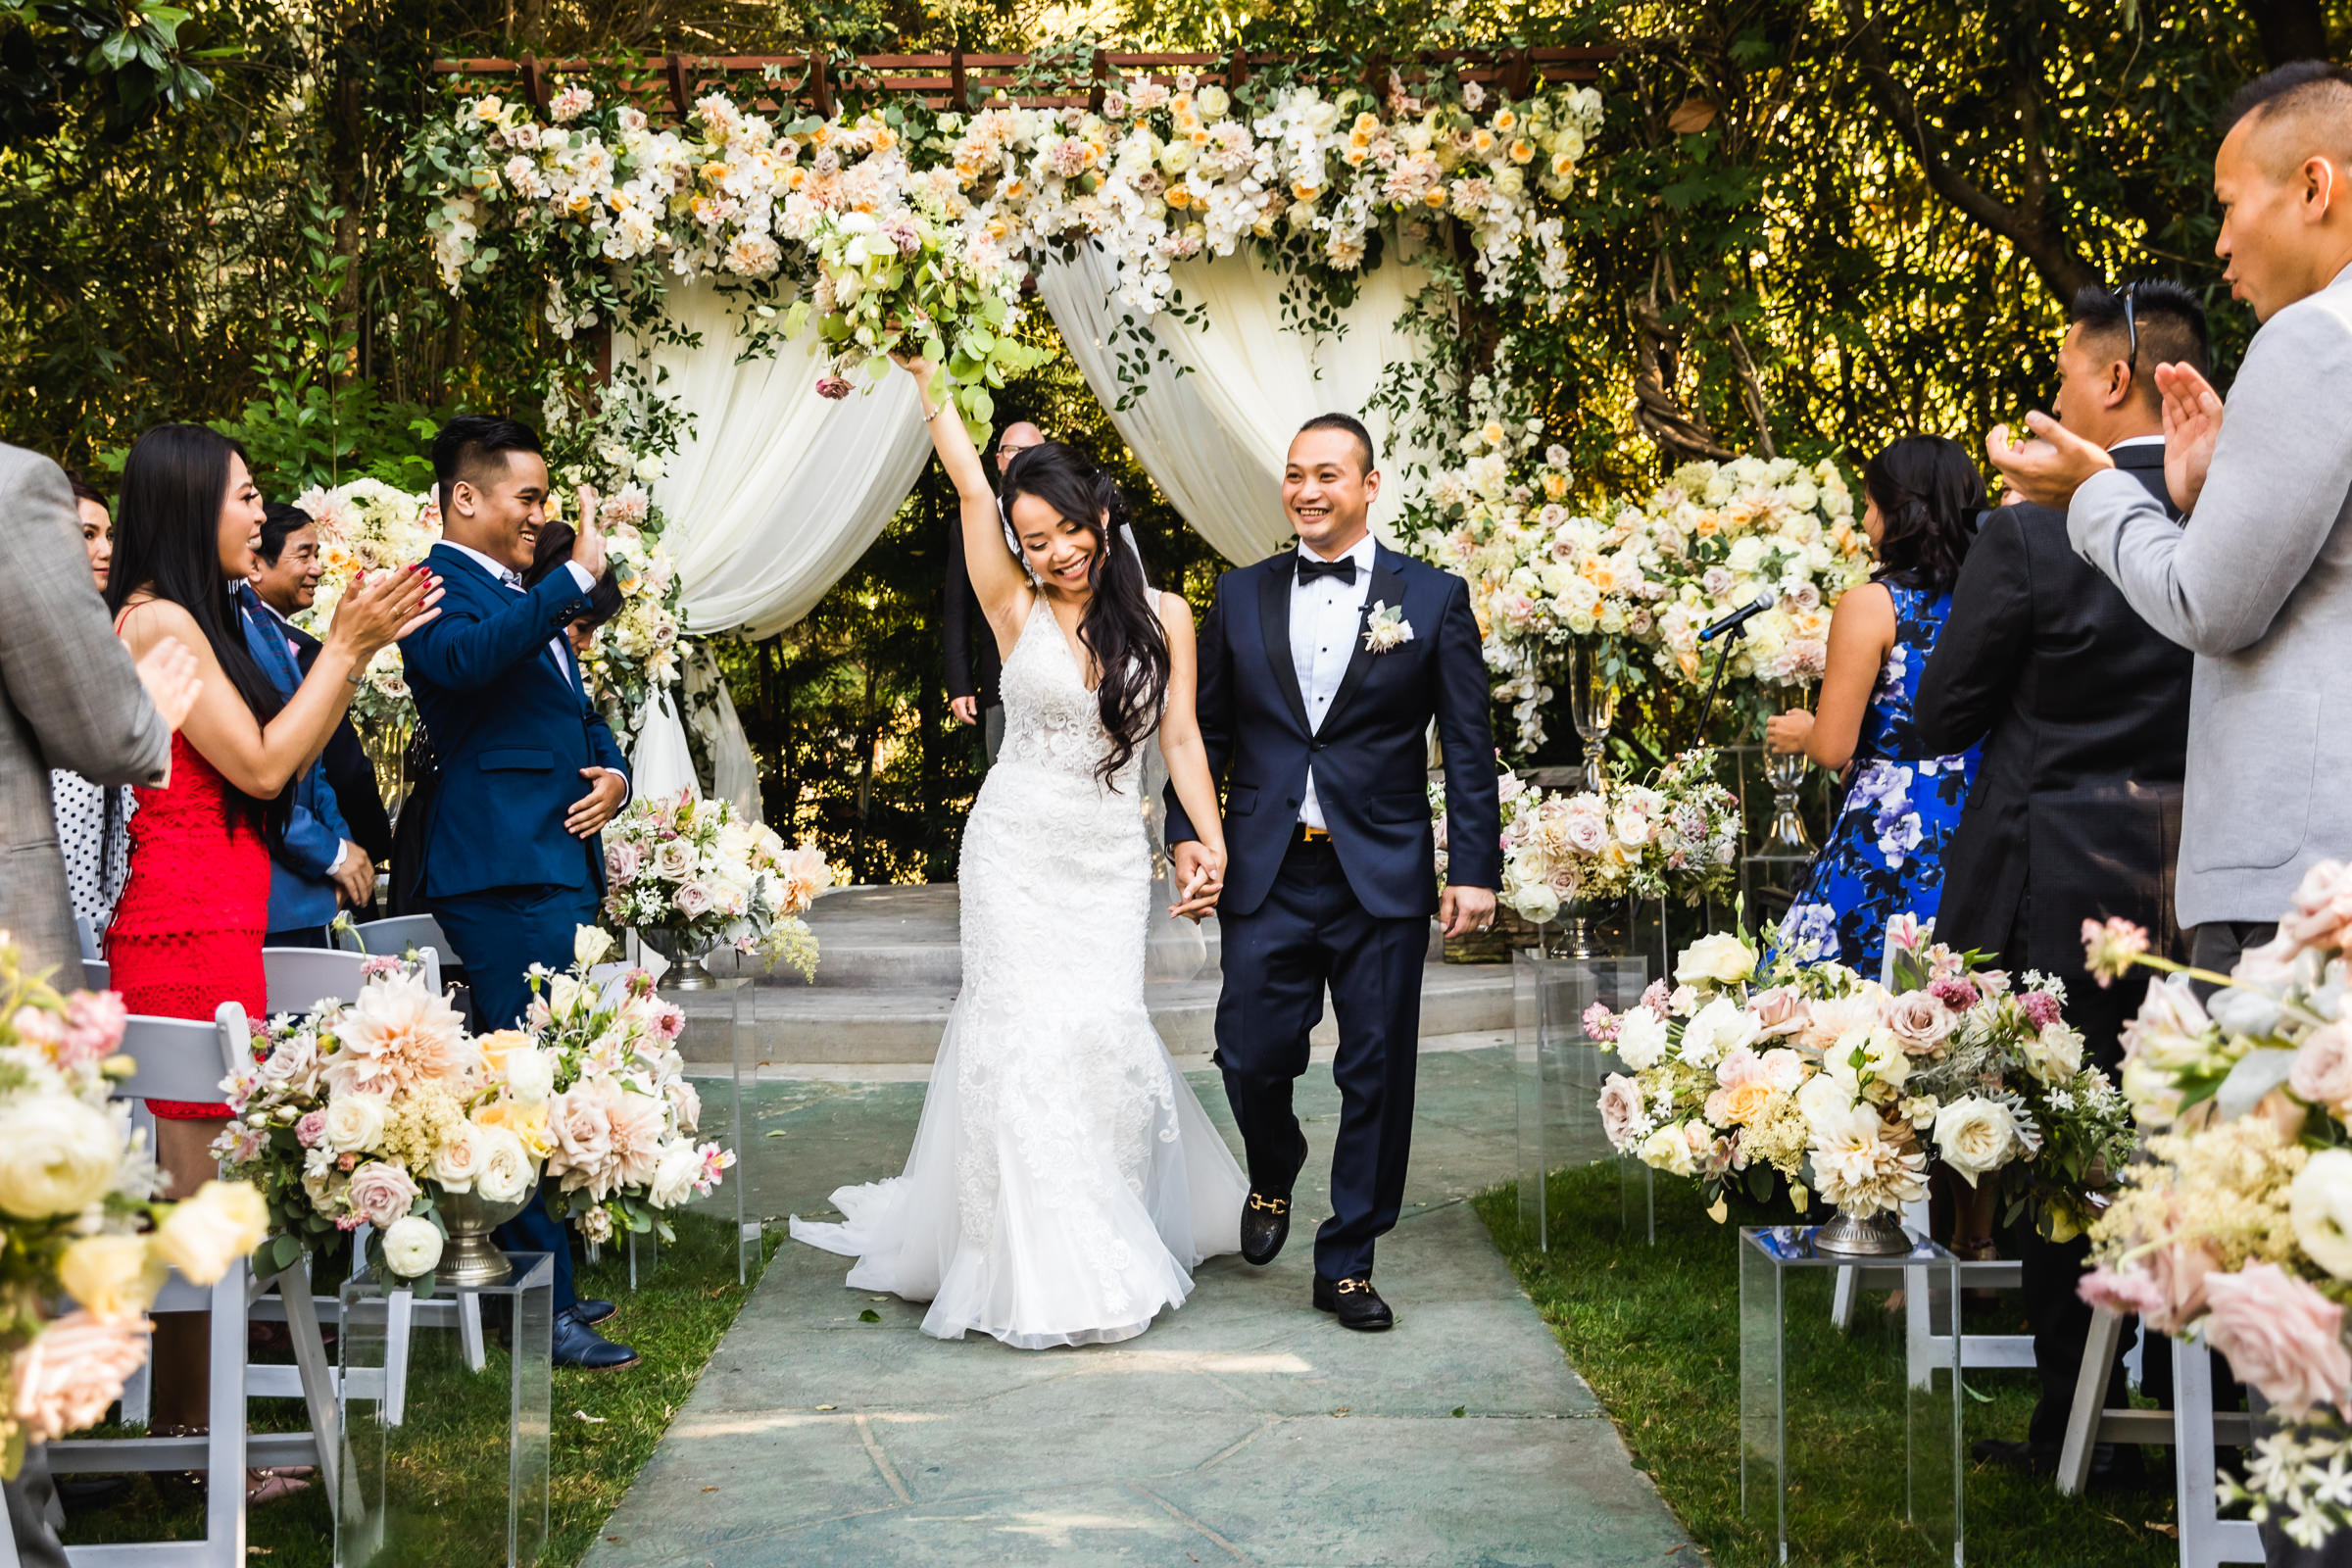 Outdoor couple recessional against profusion of flowers - photo by Xiaoqi Li Photography